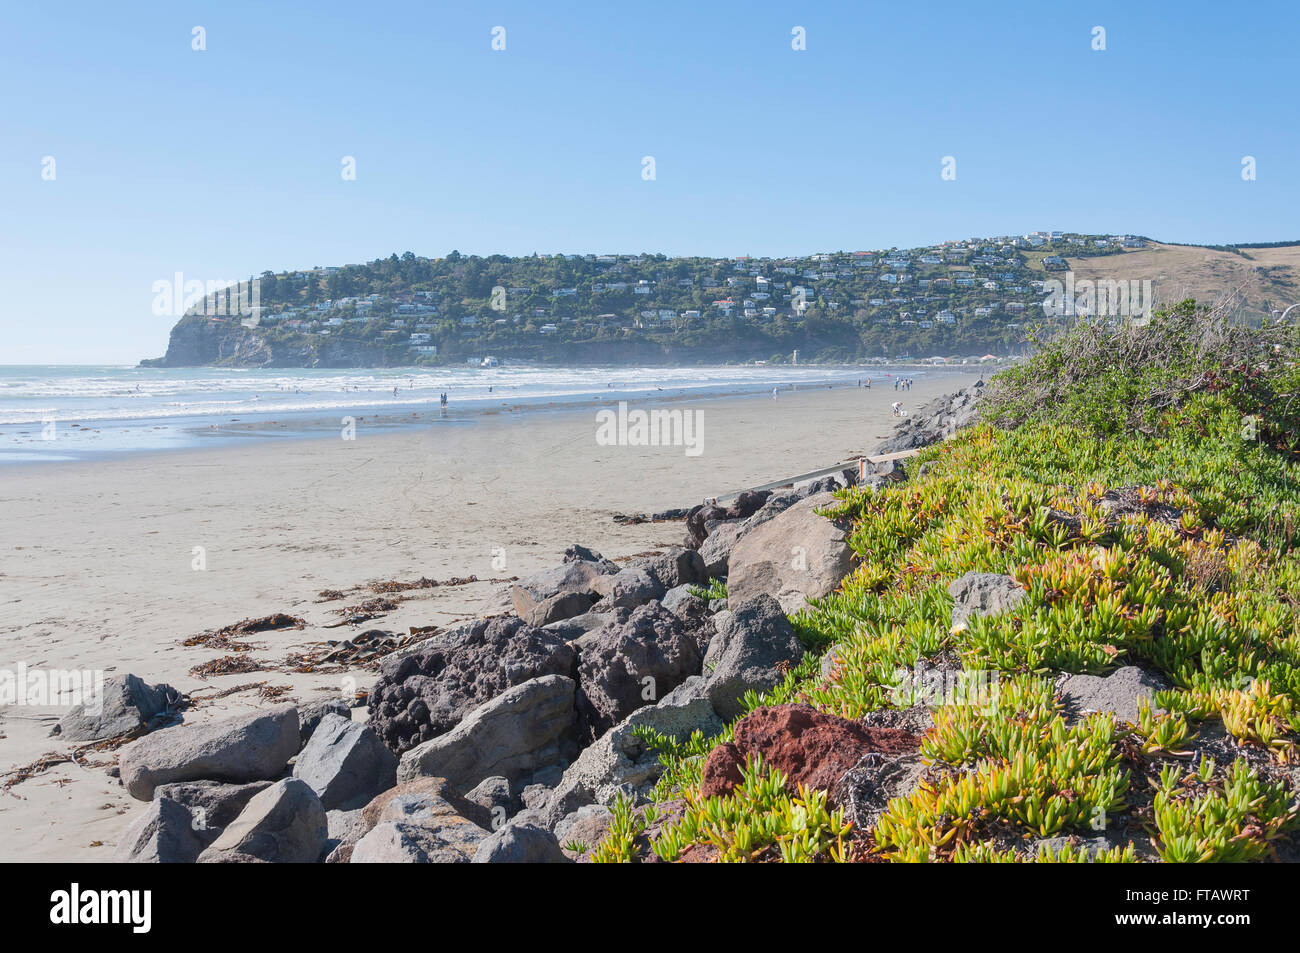 Scarborough Beach and Heads, Sumner, Christchurch, Canterbury Region, South Island, New Zealand - Stock Image